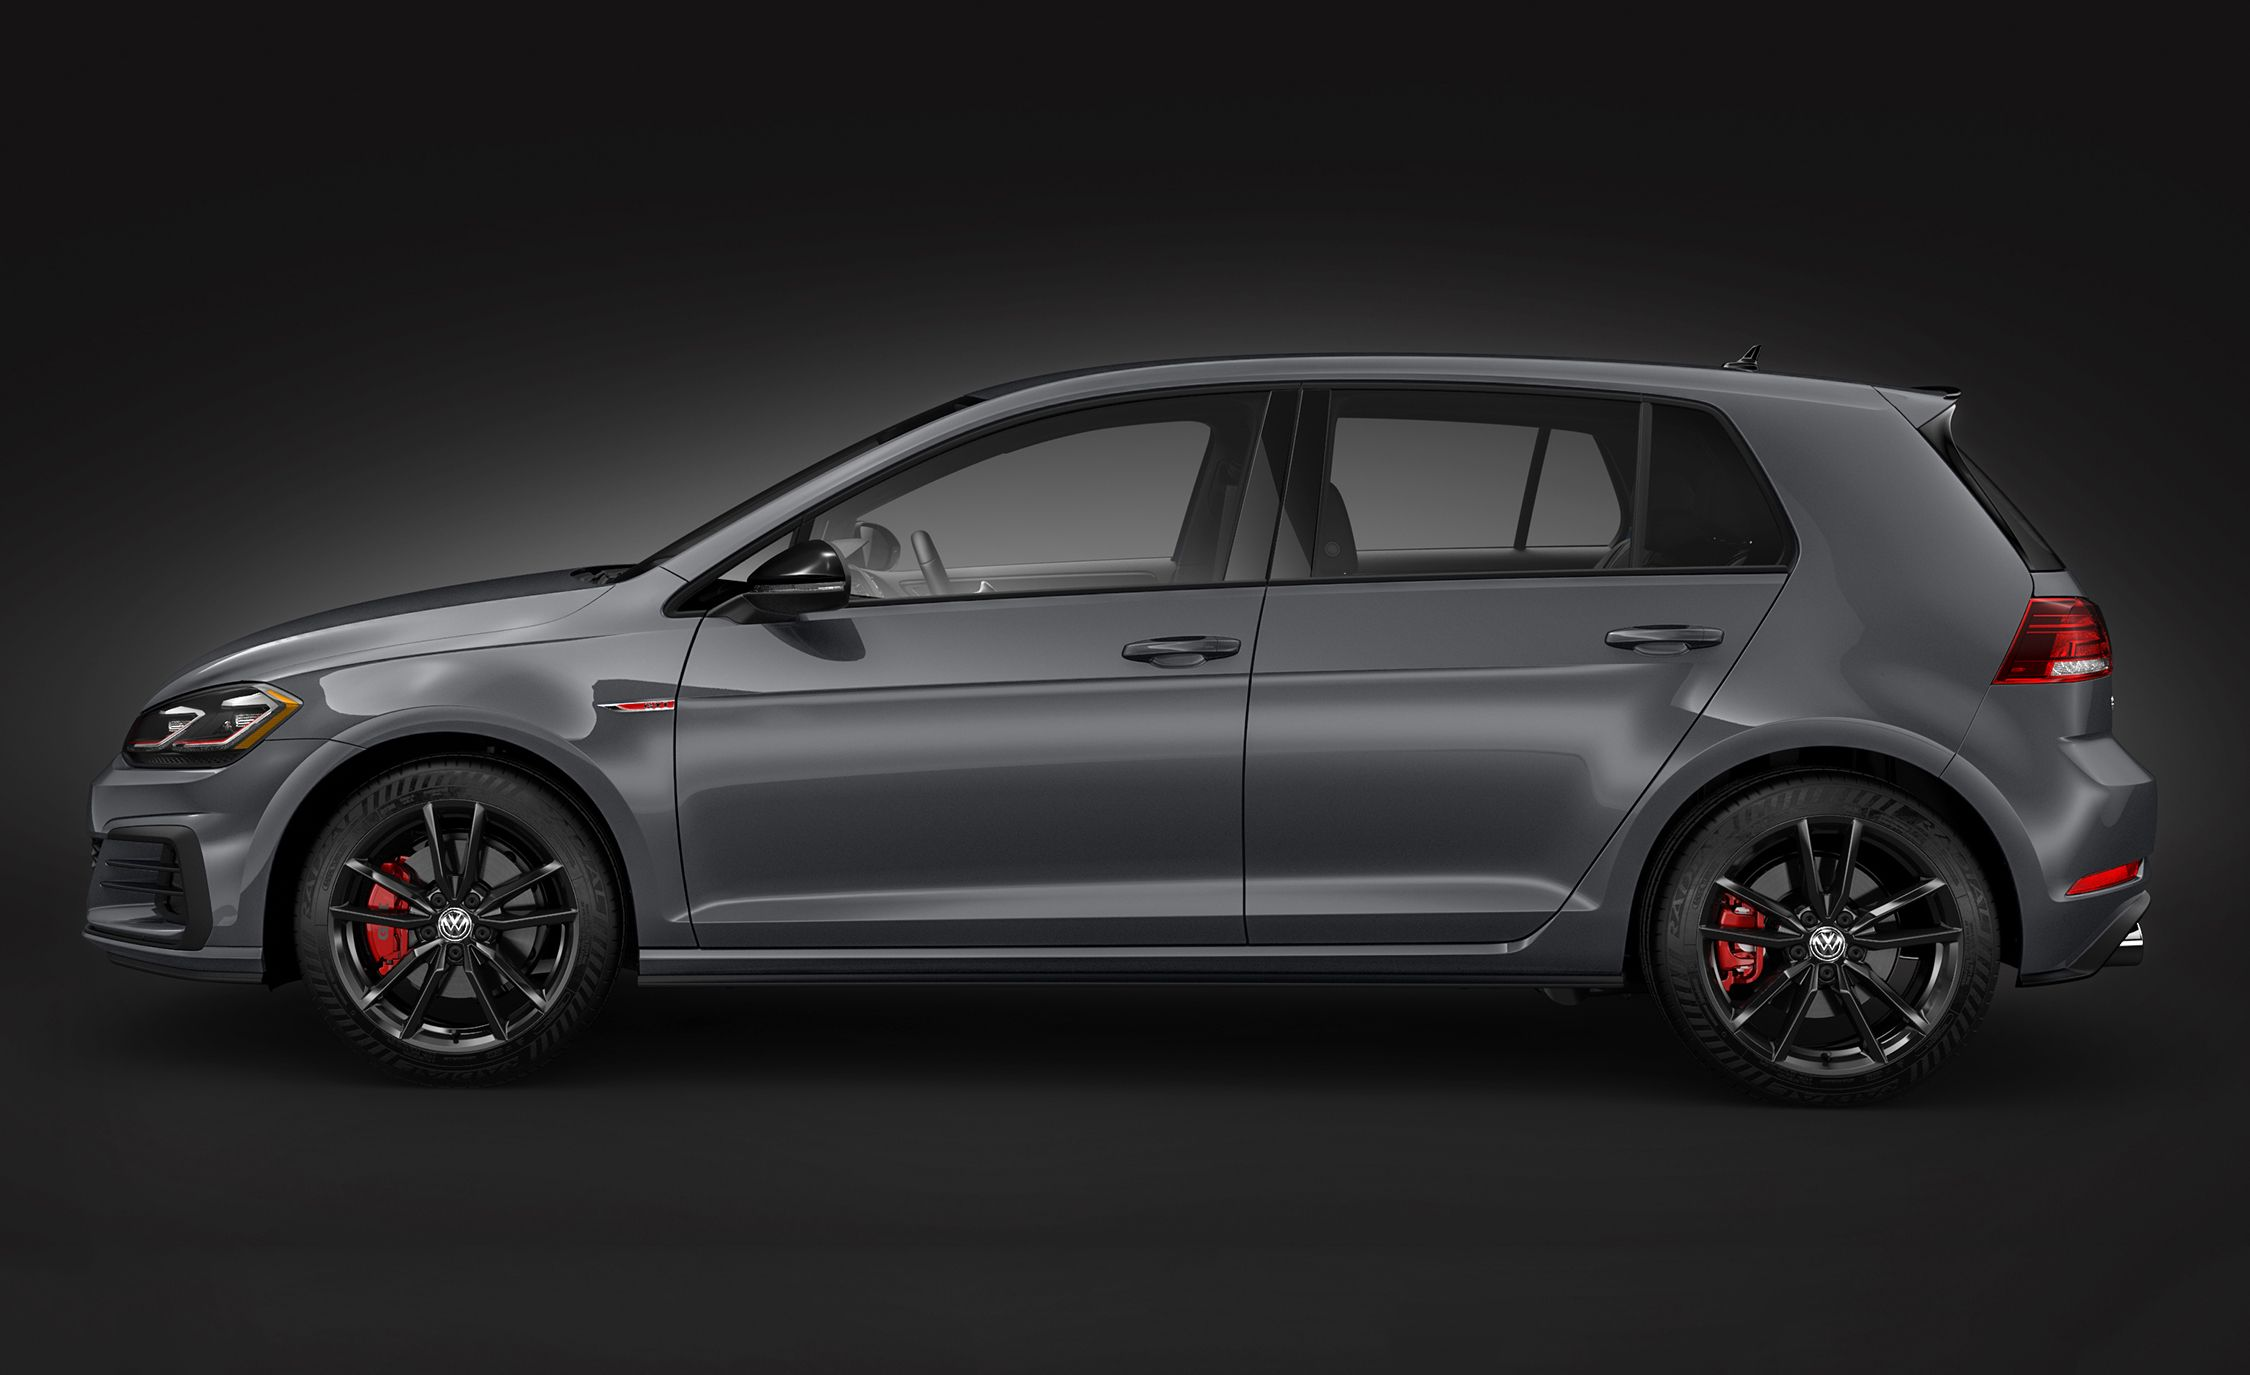 2019 Vw Gti >> 2019 Volkswagen Golf Gti Updated More Power And A Rabbit Edition